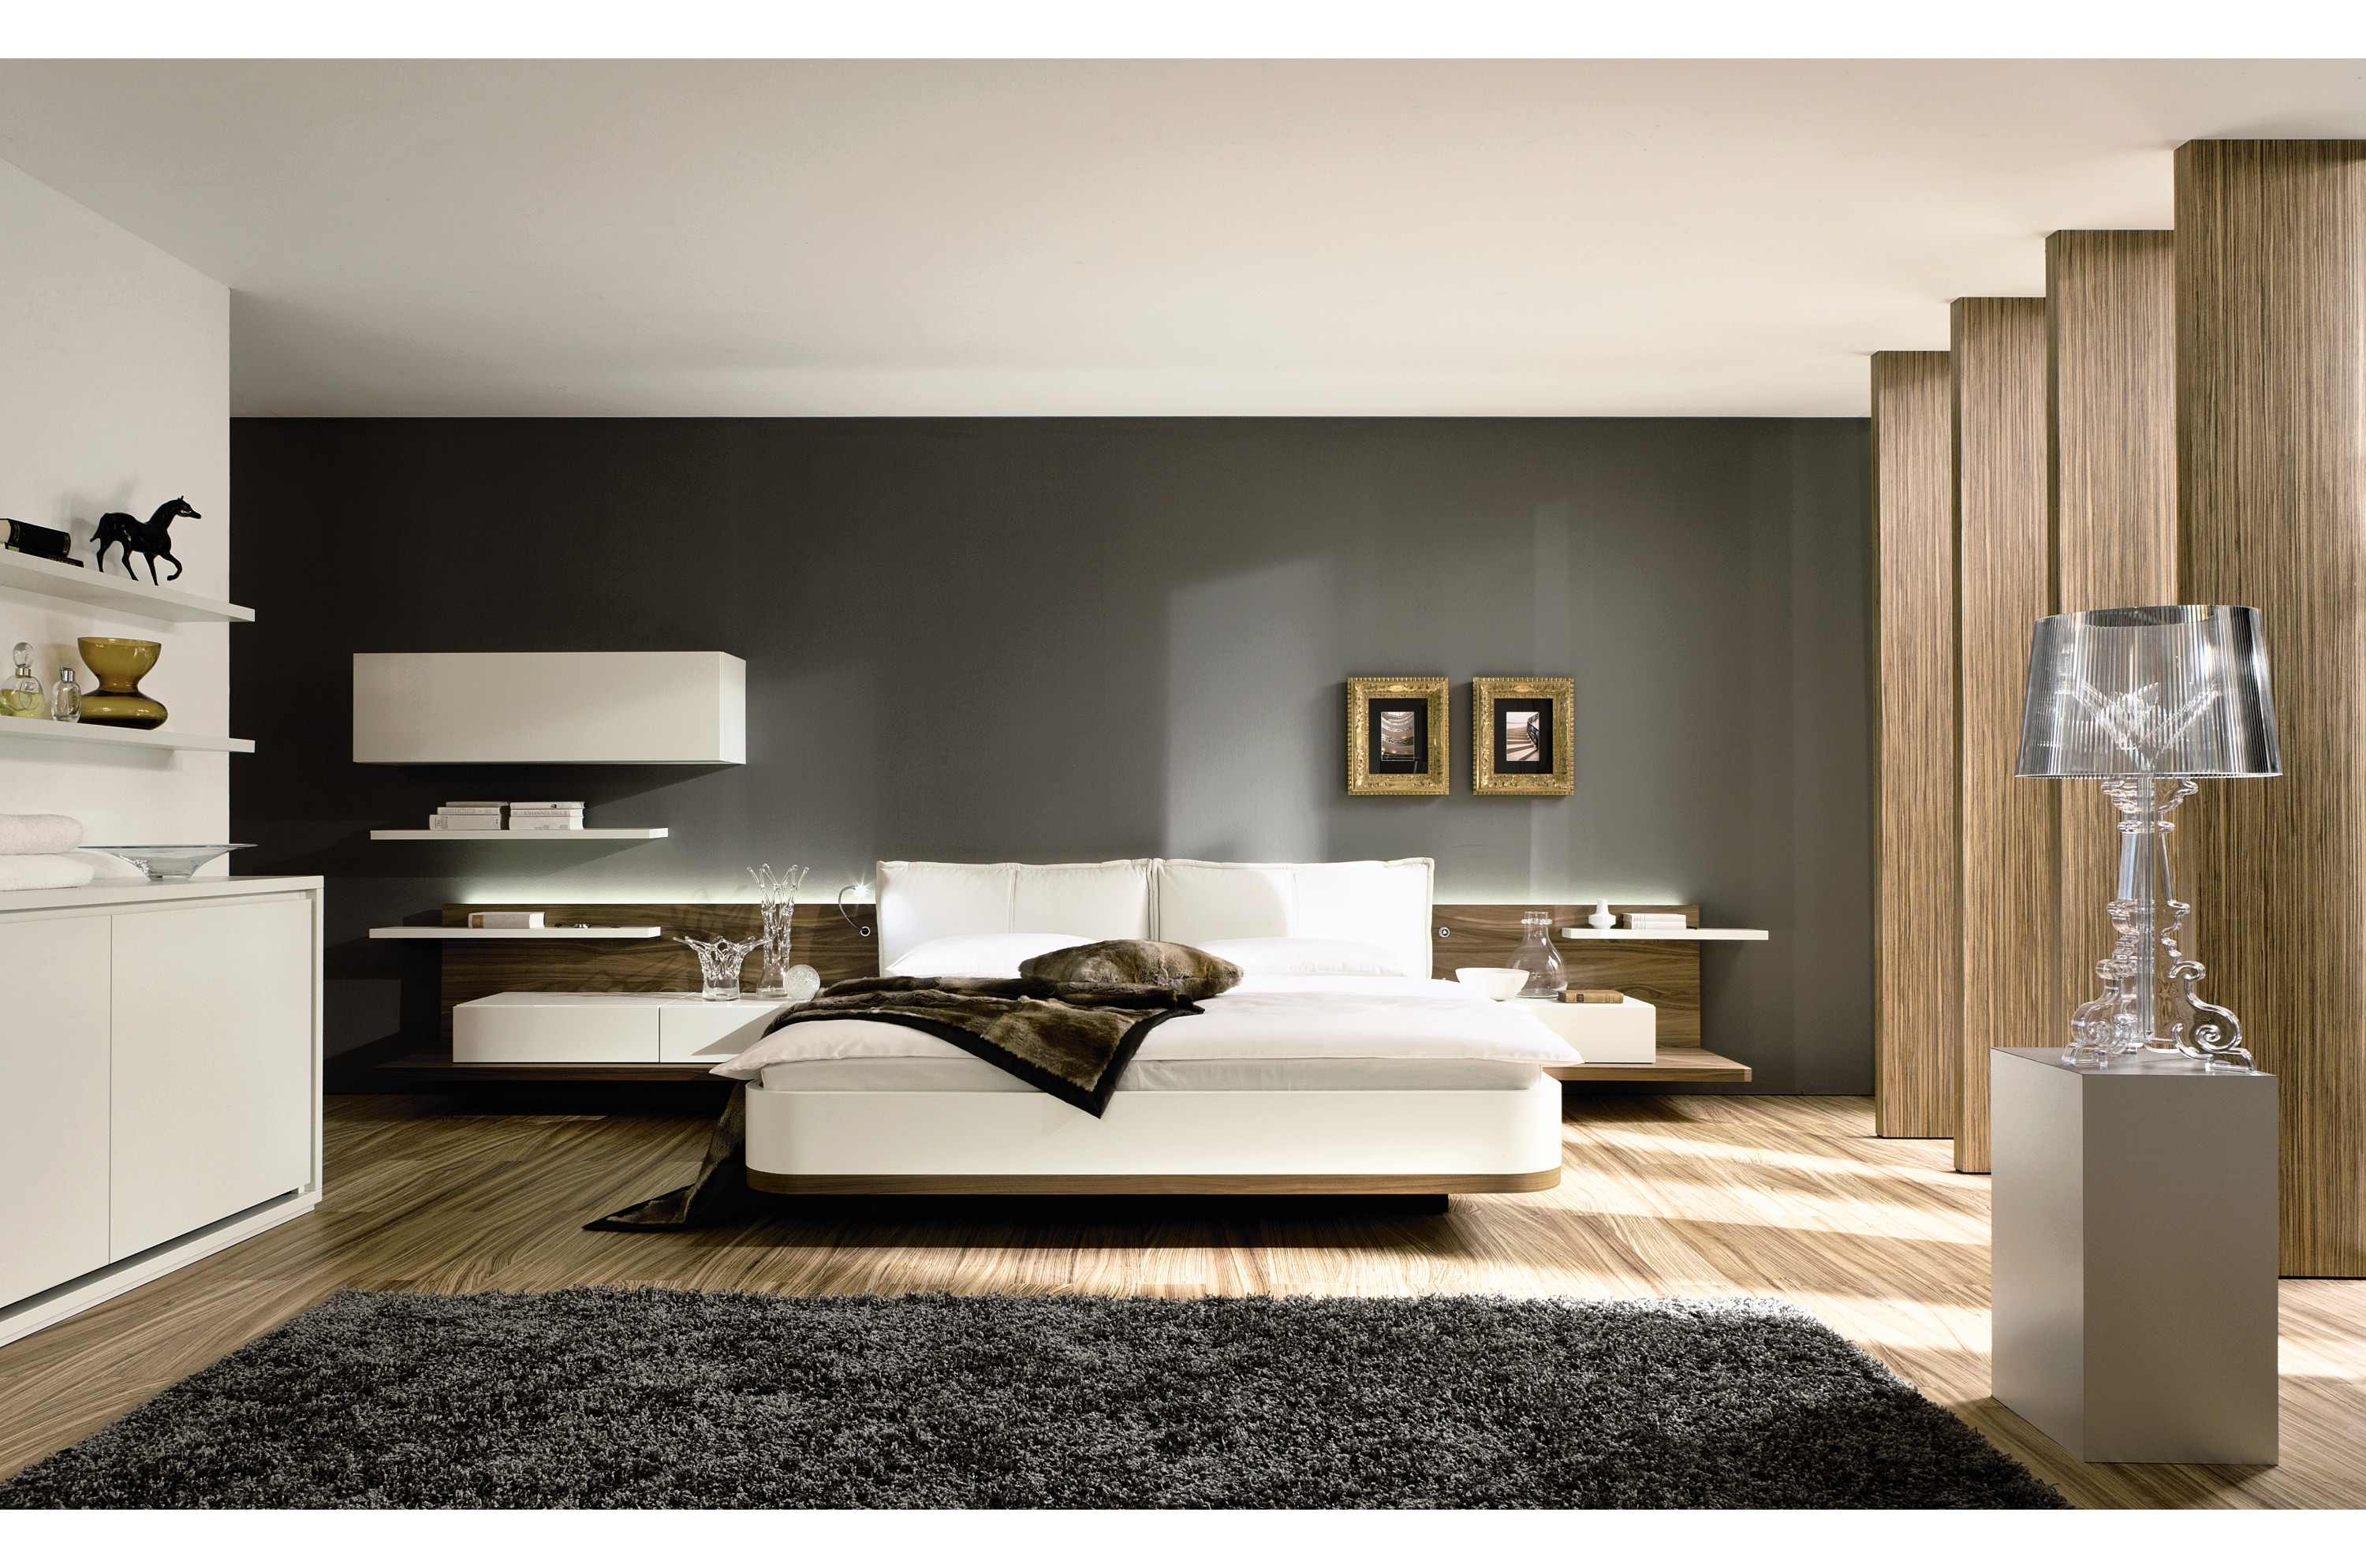 Modern bedroom innovation bedroom ideas interior design for Modern bedroom ideas